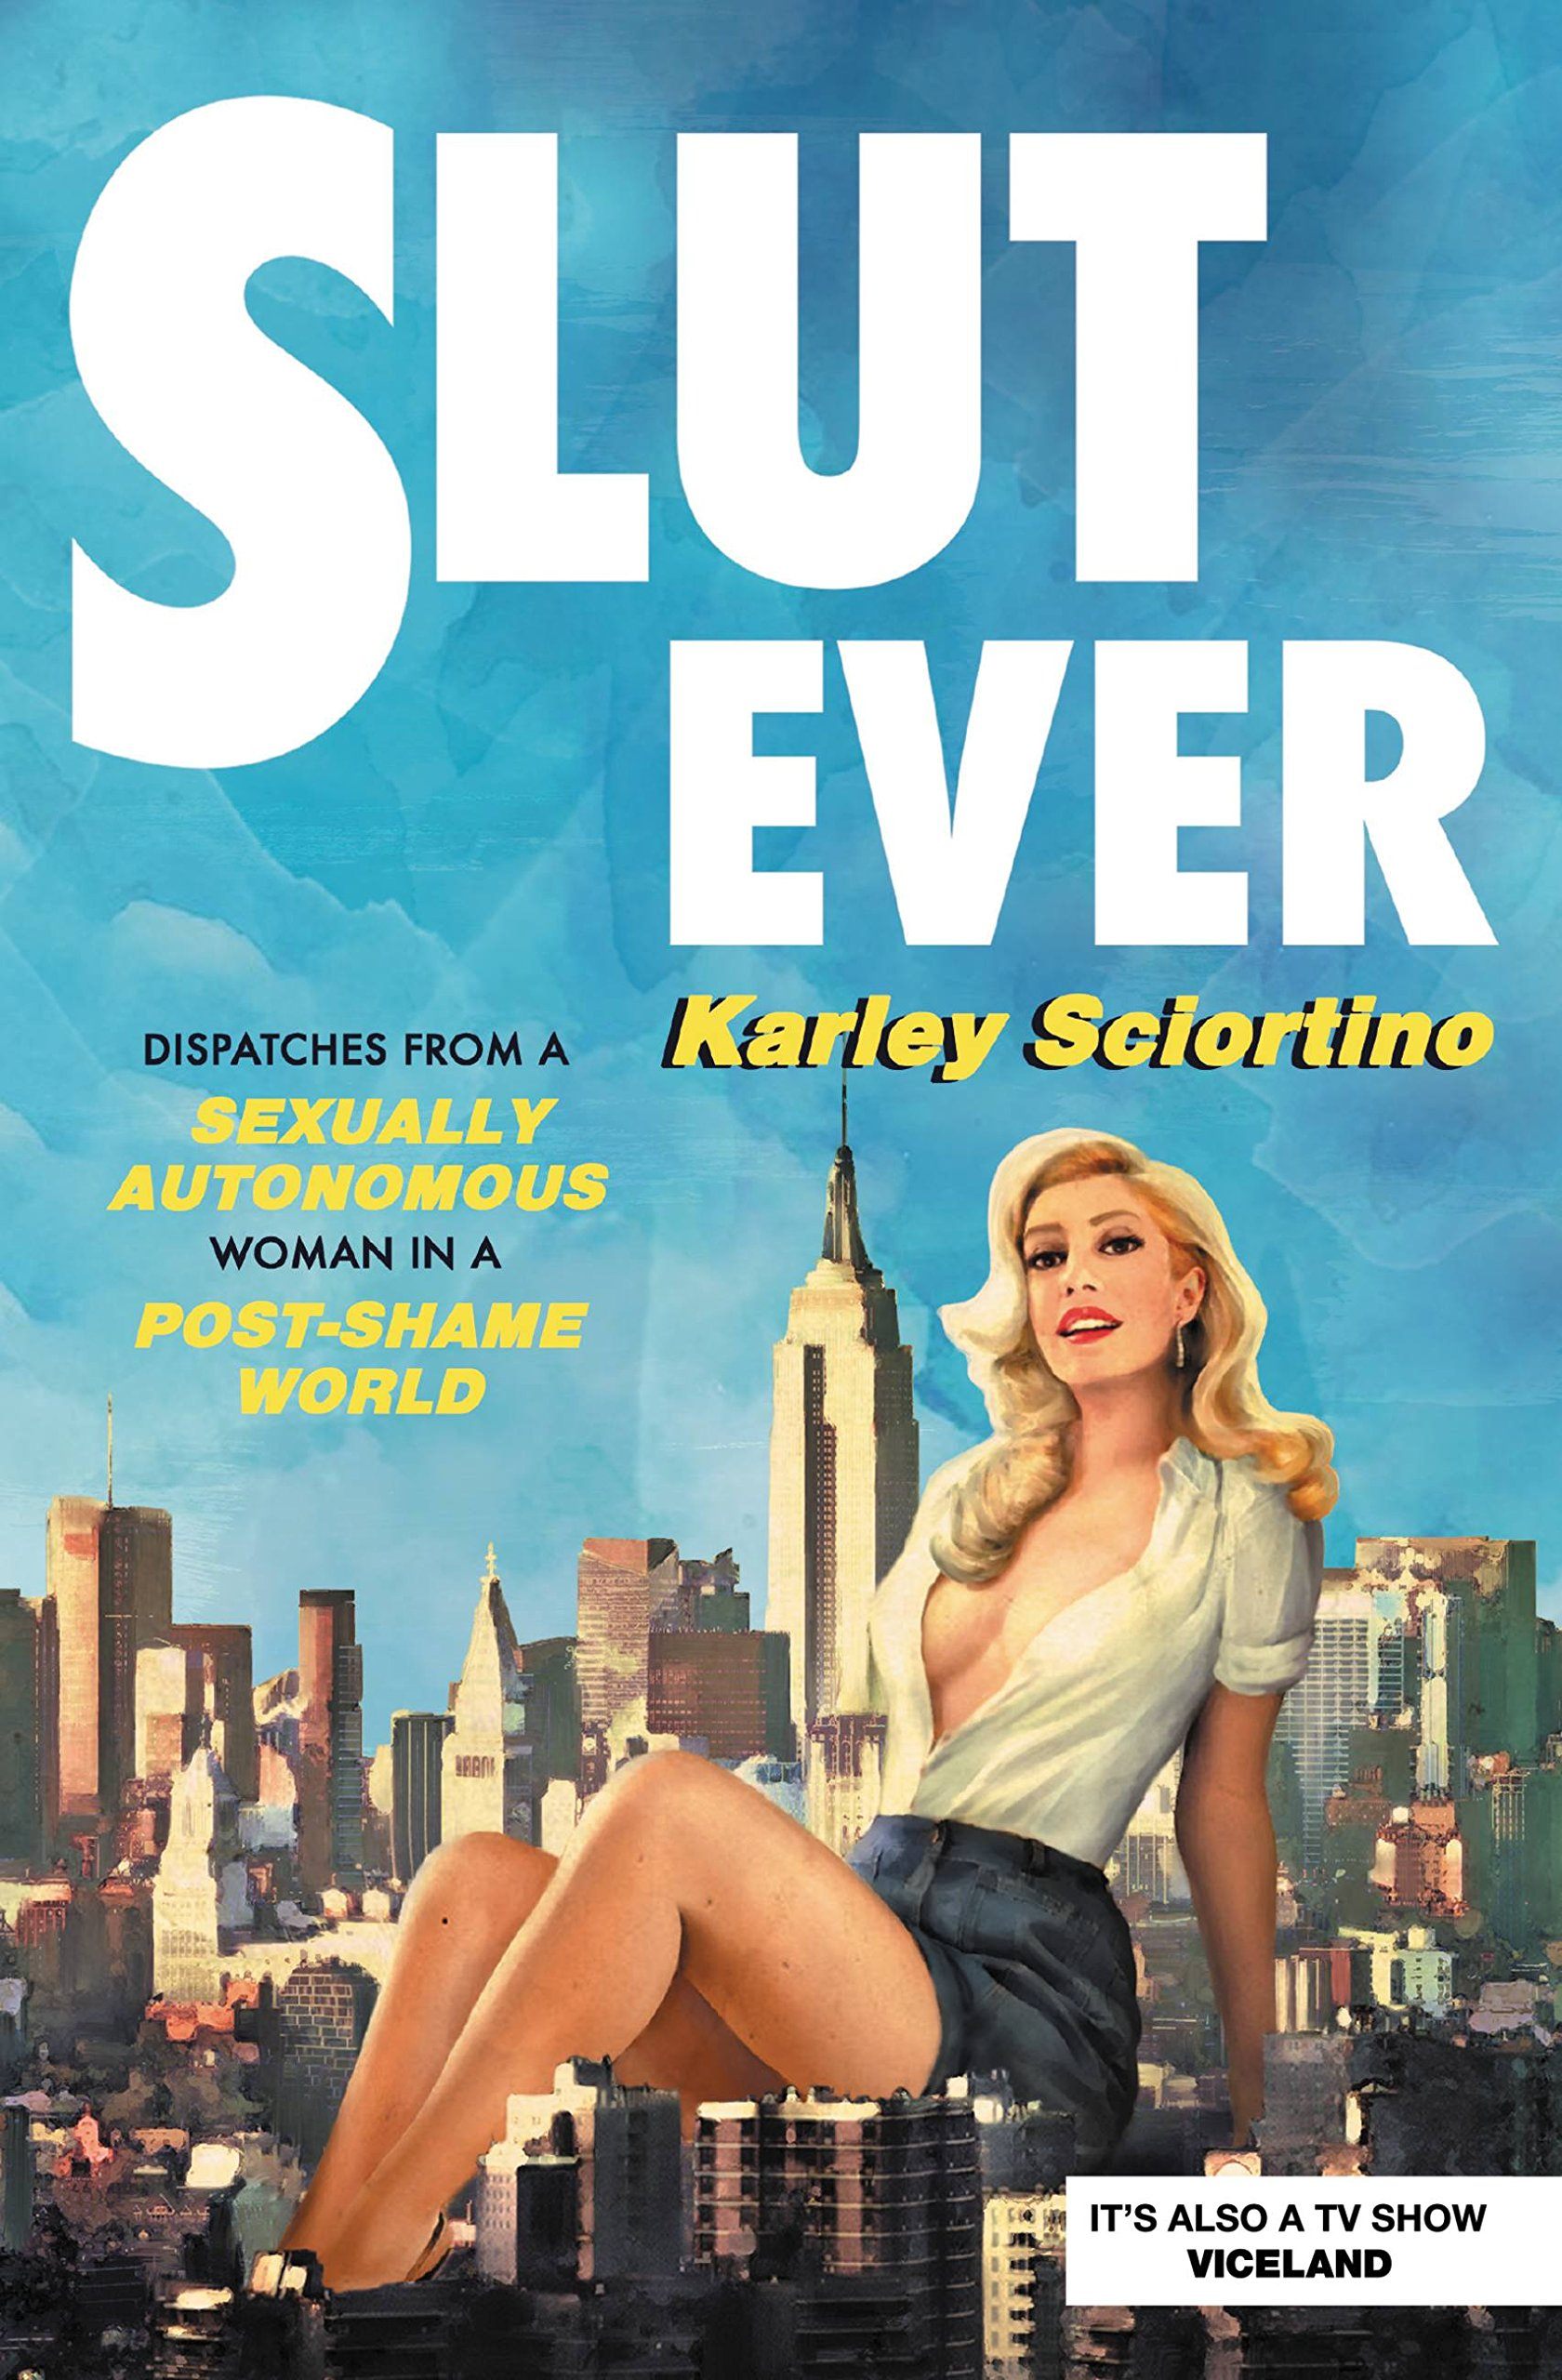 Image OfSlutever: Dispatches From A Sexually Autonomous Woman In A Post-Shame World (English Edition)